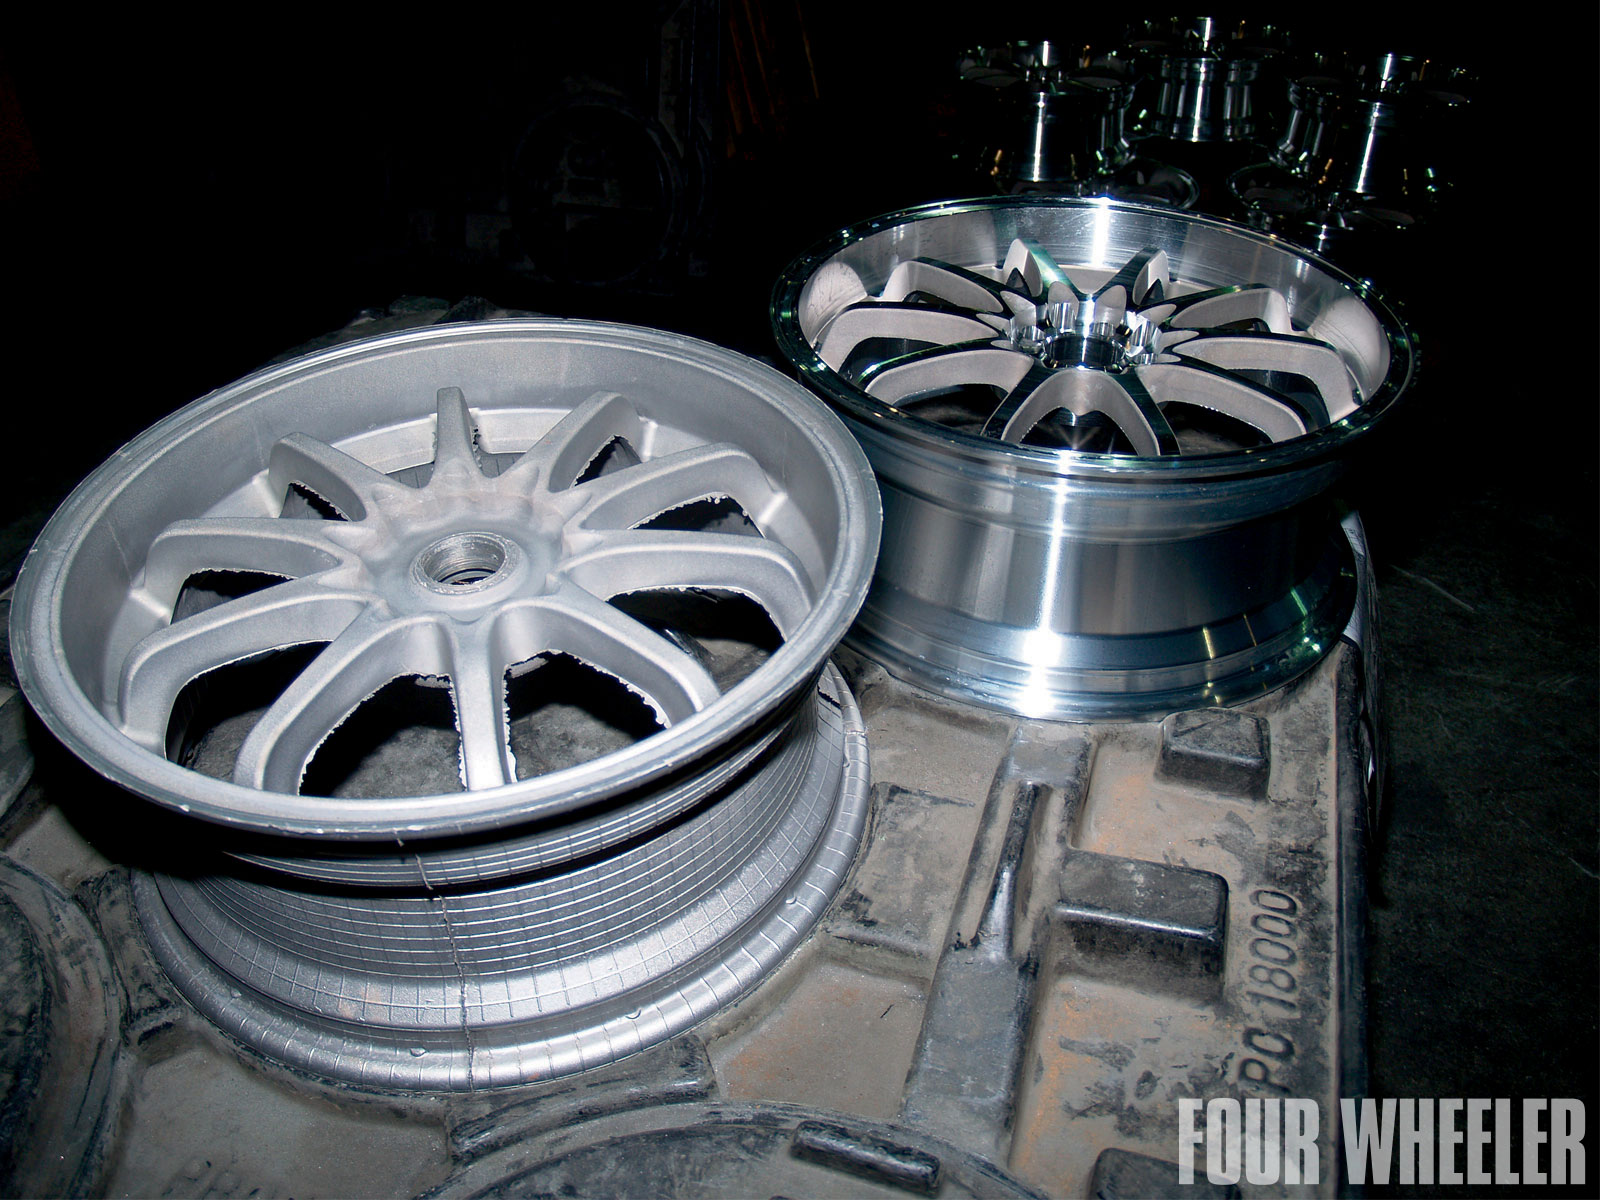 129 1102 11 o+129 1102 how they build it aluminum wheels+raw casted and machined wheel